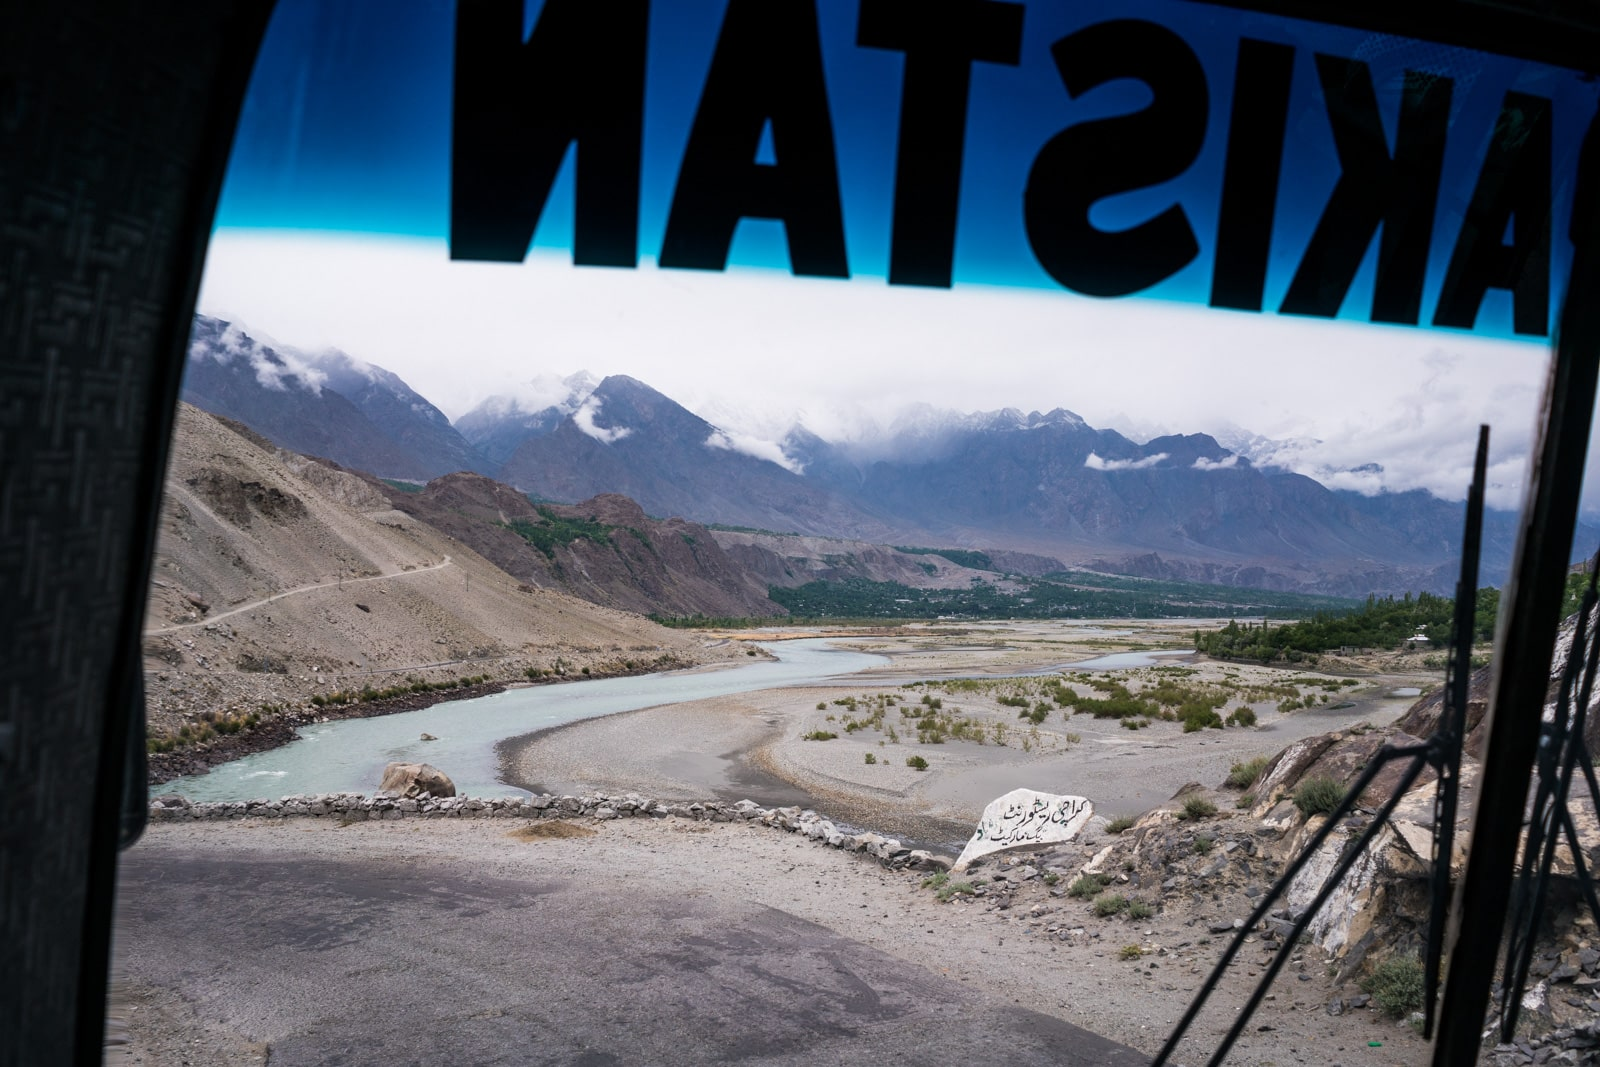 Phander Valley travel guide - Mountain views on the NATCO bus from Gilgit to Phander - Lost With Purpose travel blog